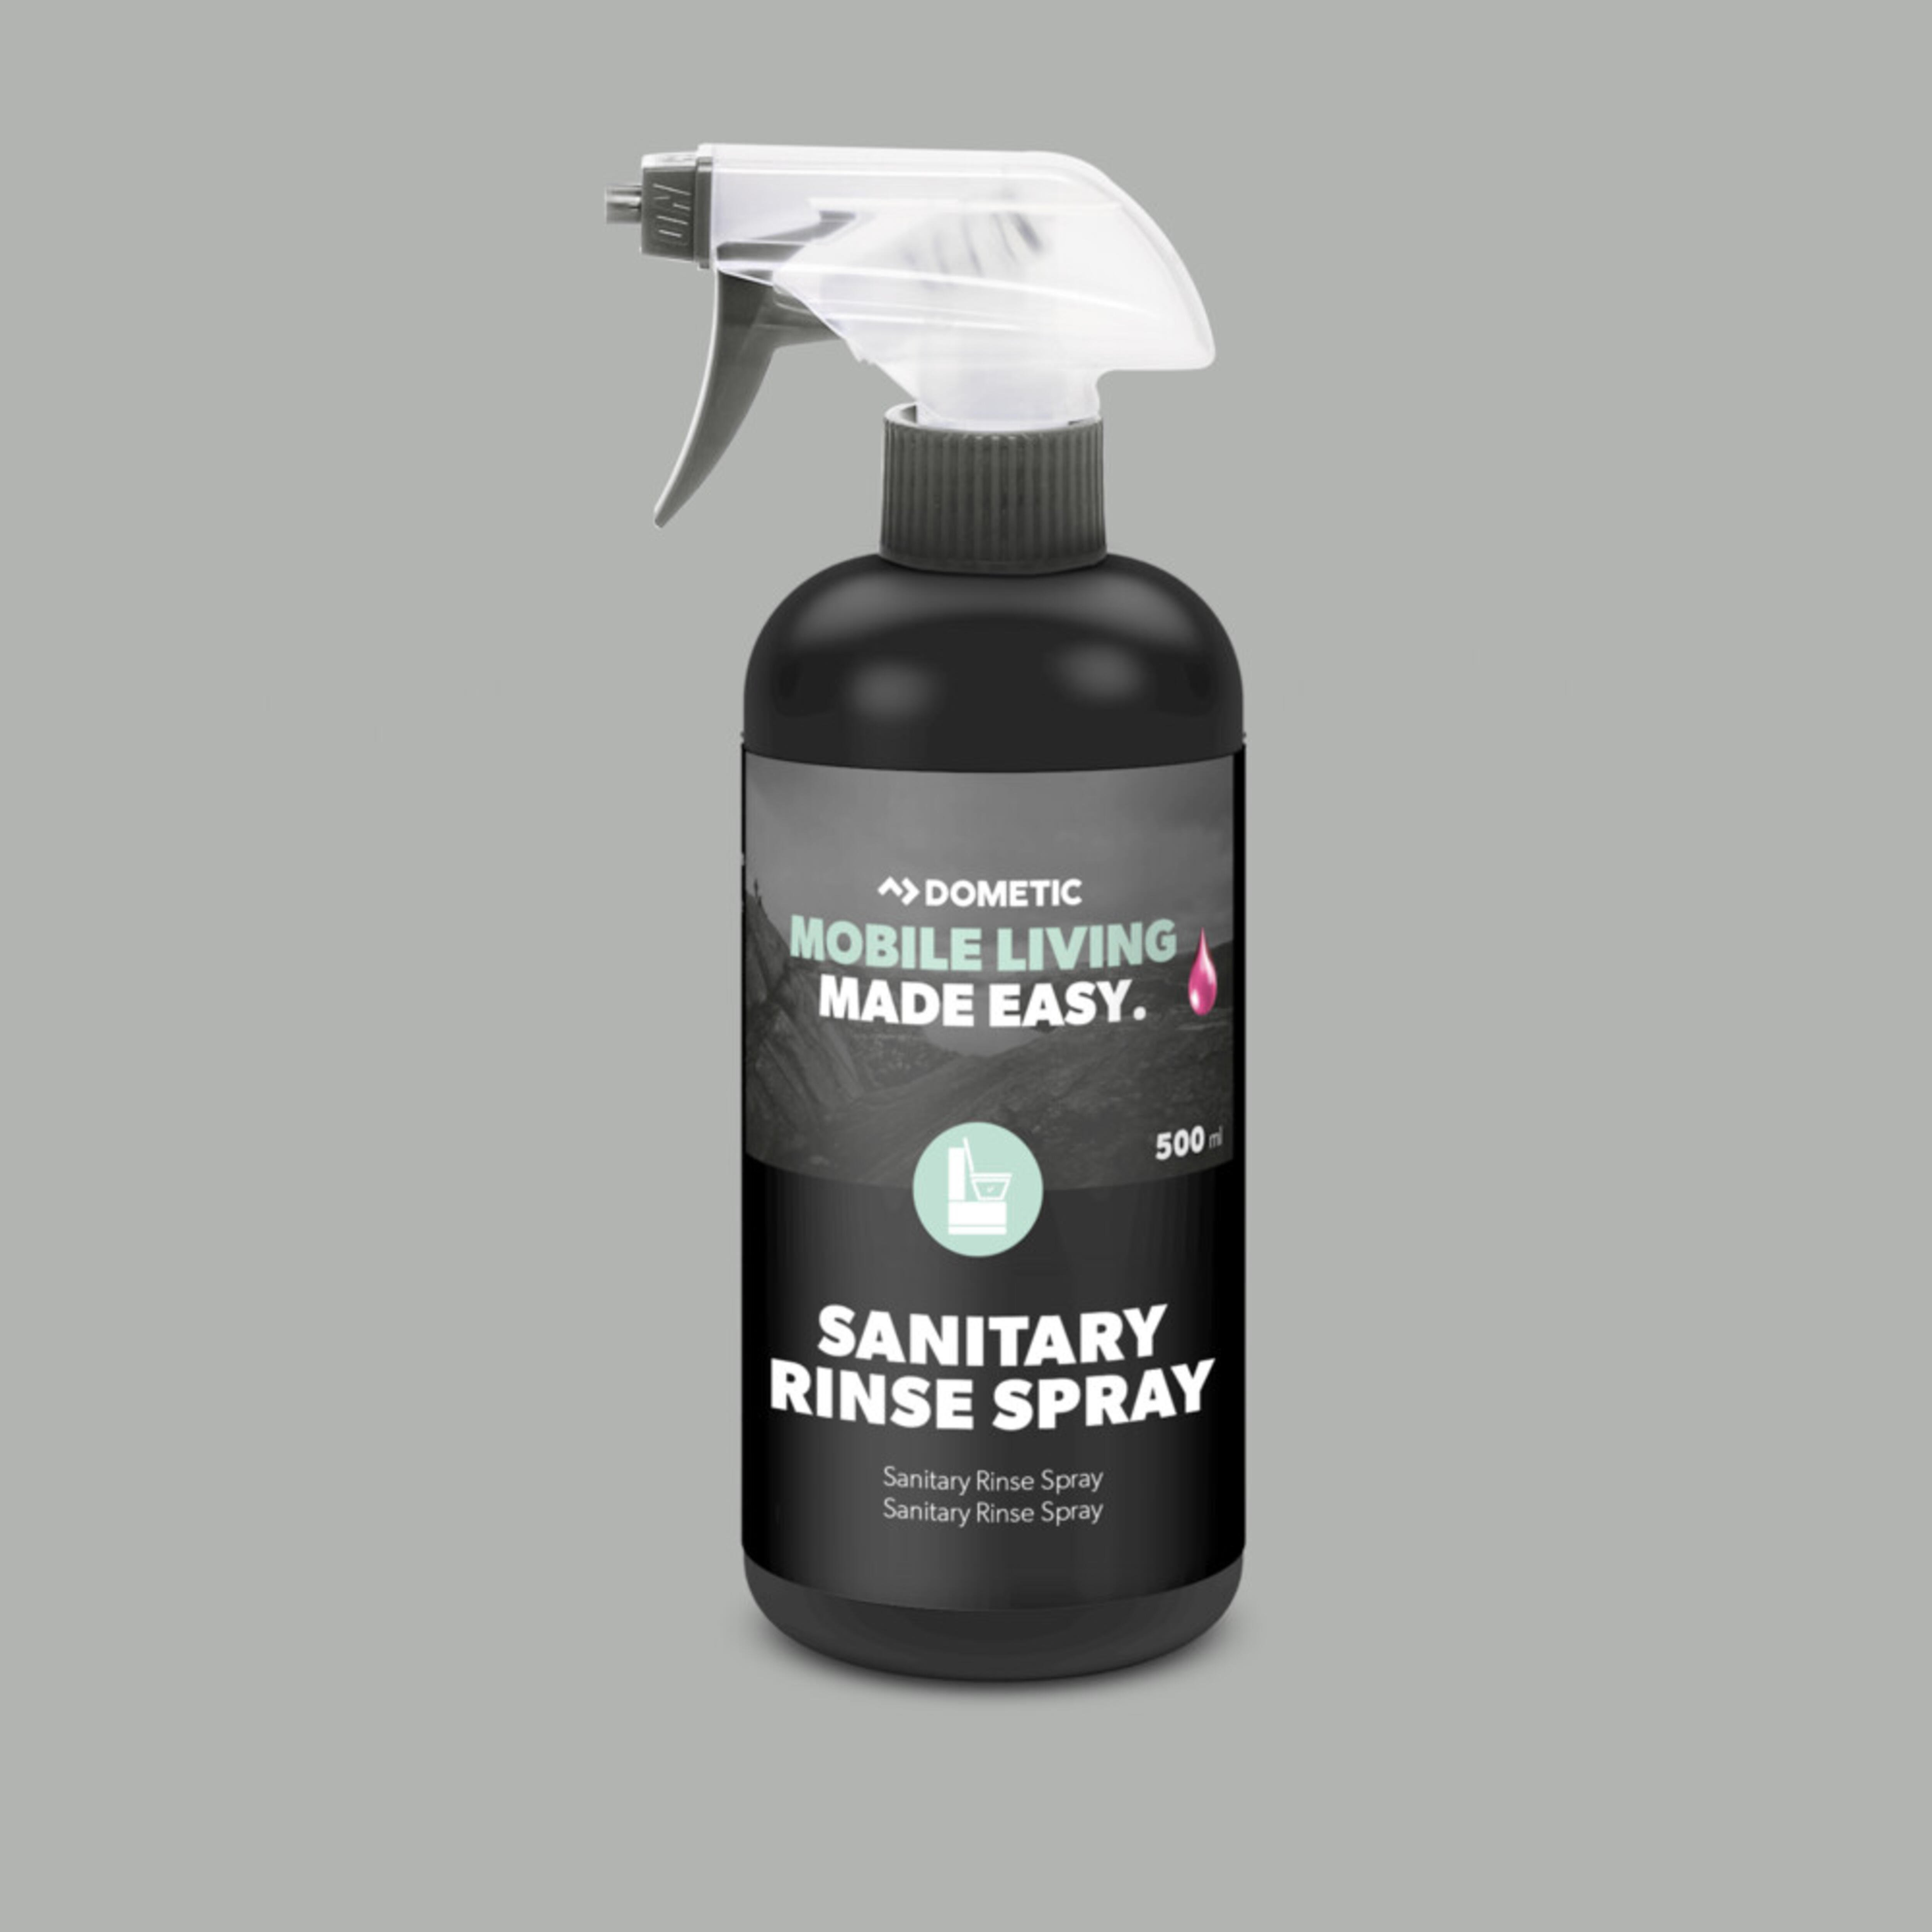 Dometic Sanitary Rinse Spray